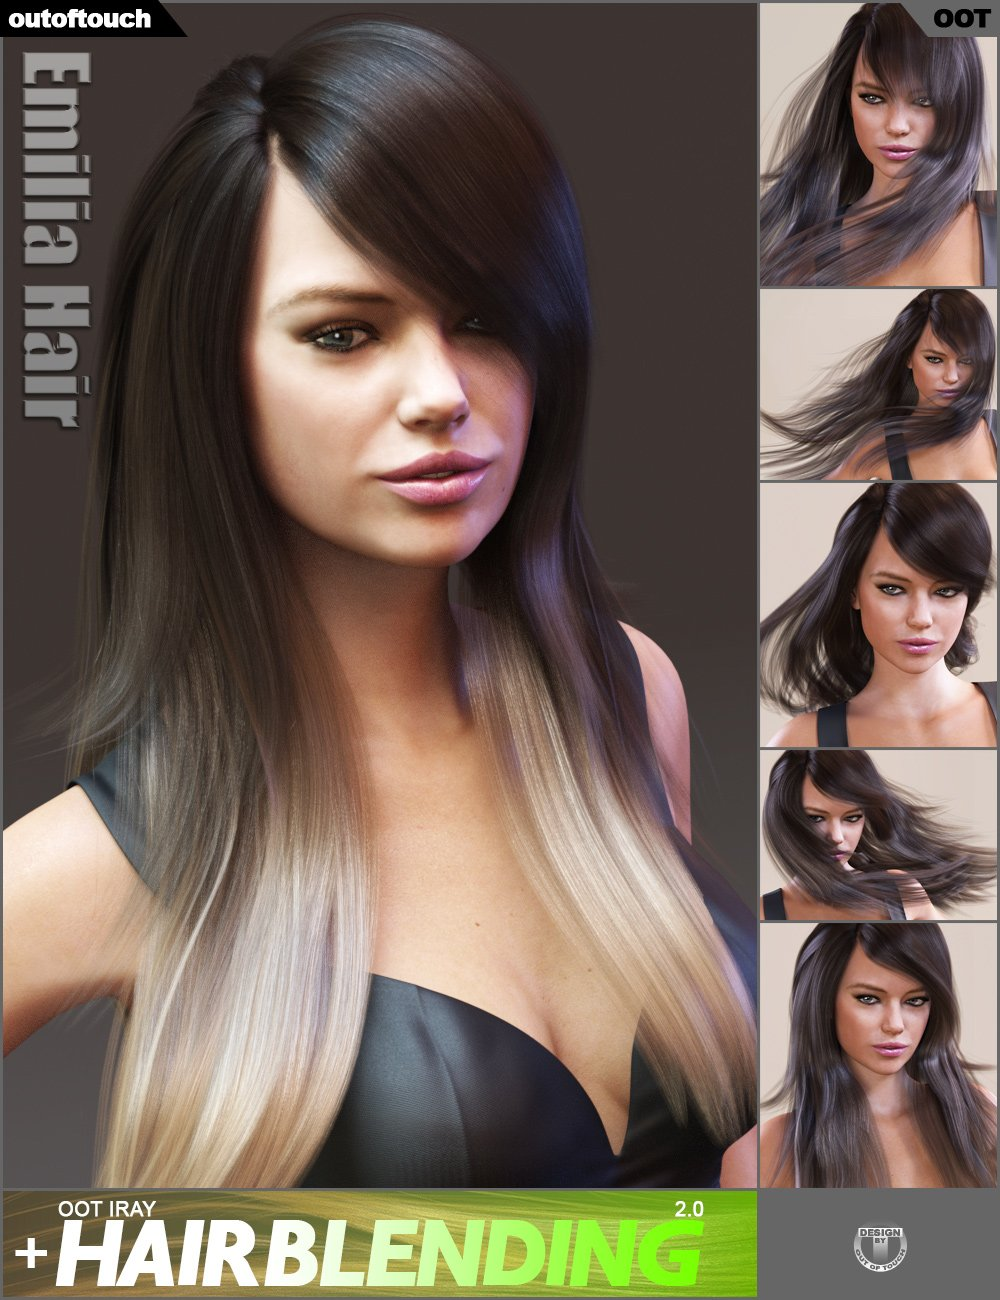 Emilia Hair and OOT Hairblending 2.0 for Genesis 3 Female(s)